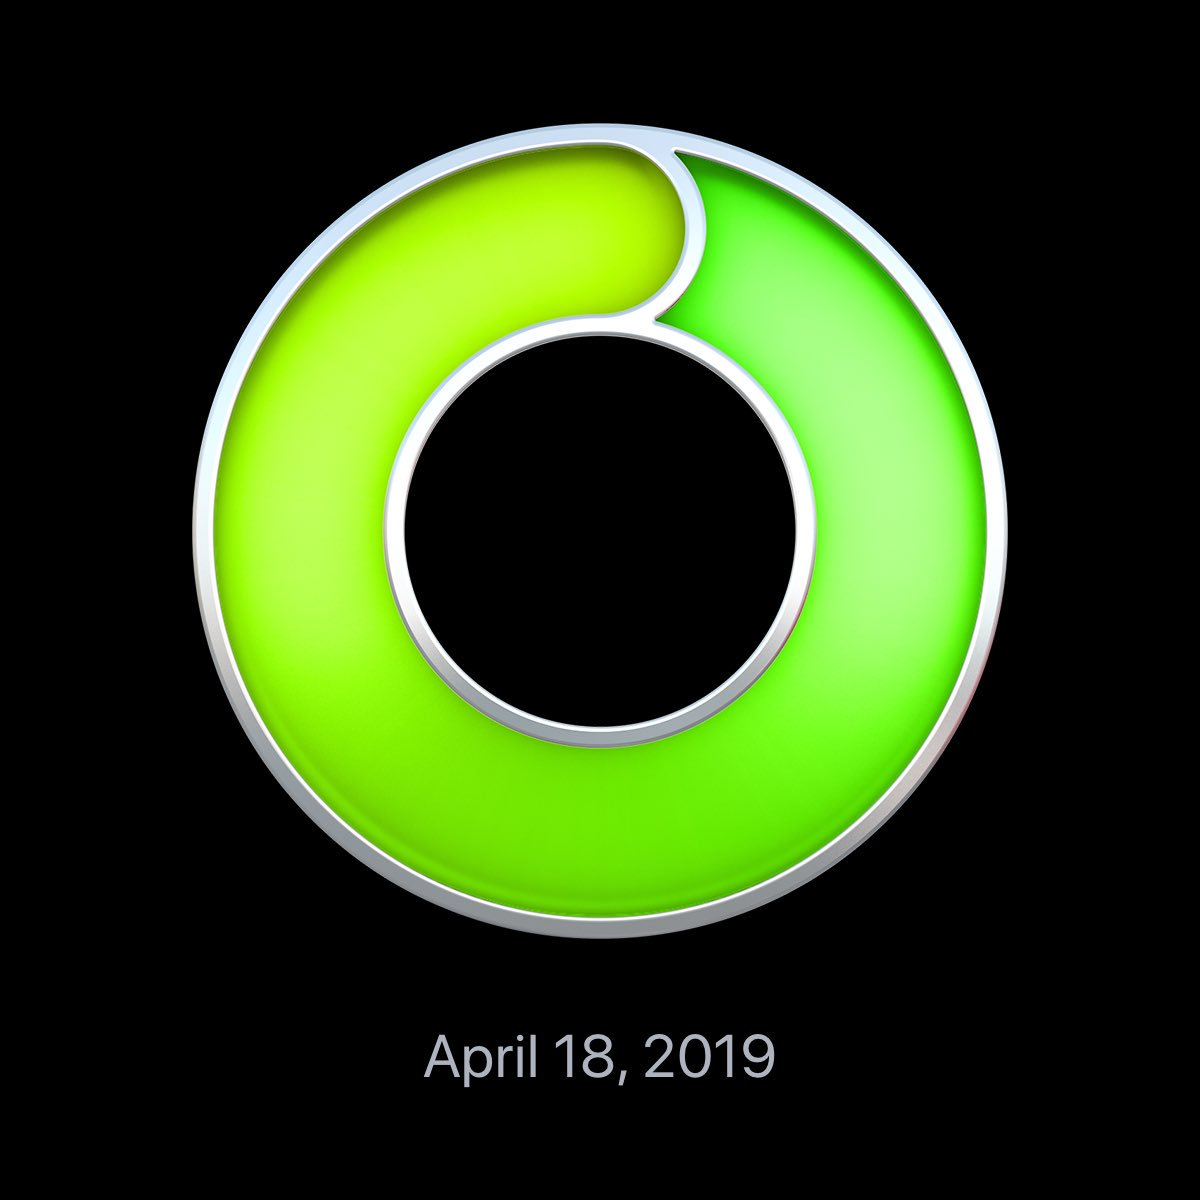 I cycled indoors for 0:33 with the Workout app on my #AppleWatch #applewatch4 #AppleWatchSeries4 #FitnessChallenge #fitness #FitnessMotivation #FitnessGoals #fitnessfreak #workoutmotivation #fitnessaddict #fitnessjourney #fitnesslifestyle #bikelife #MMDDDDLCTWorkout